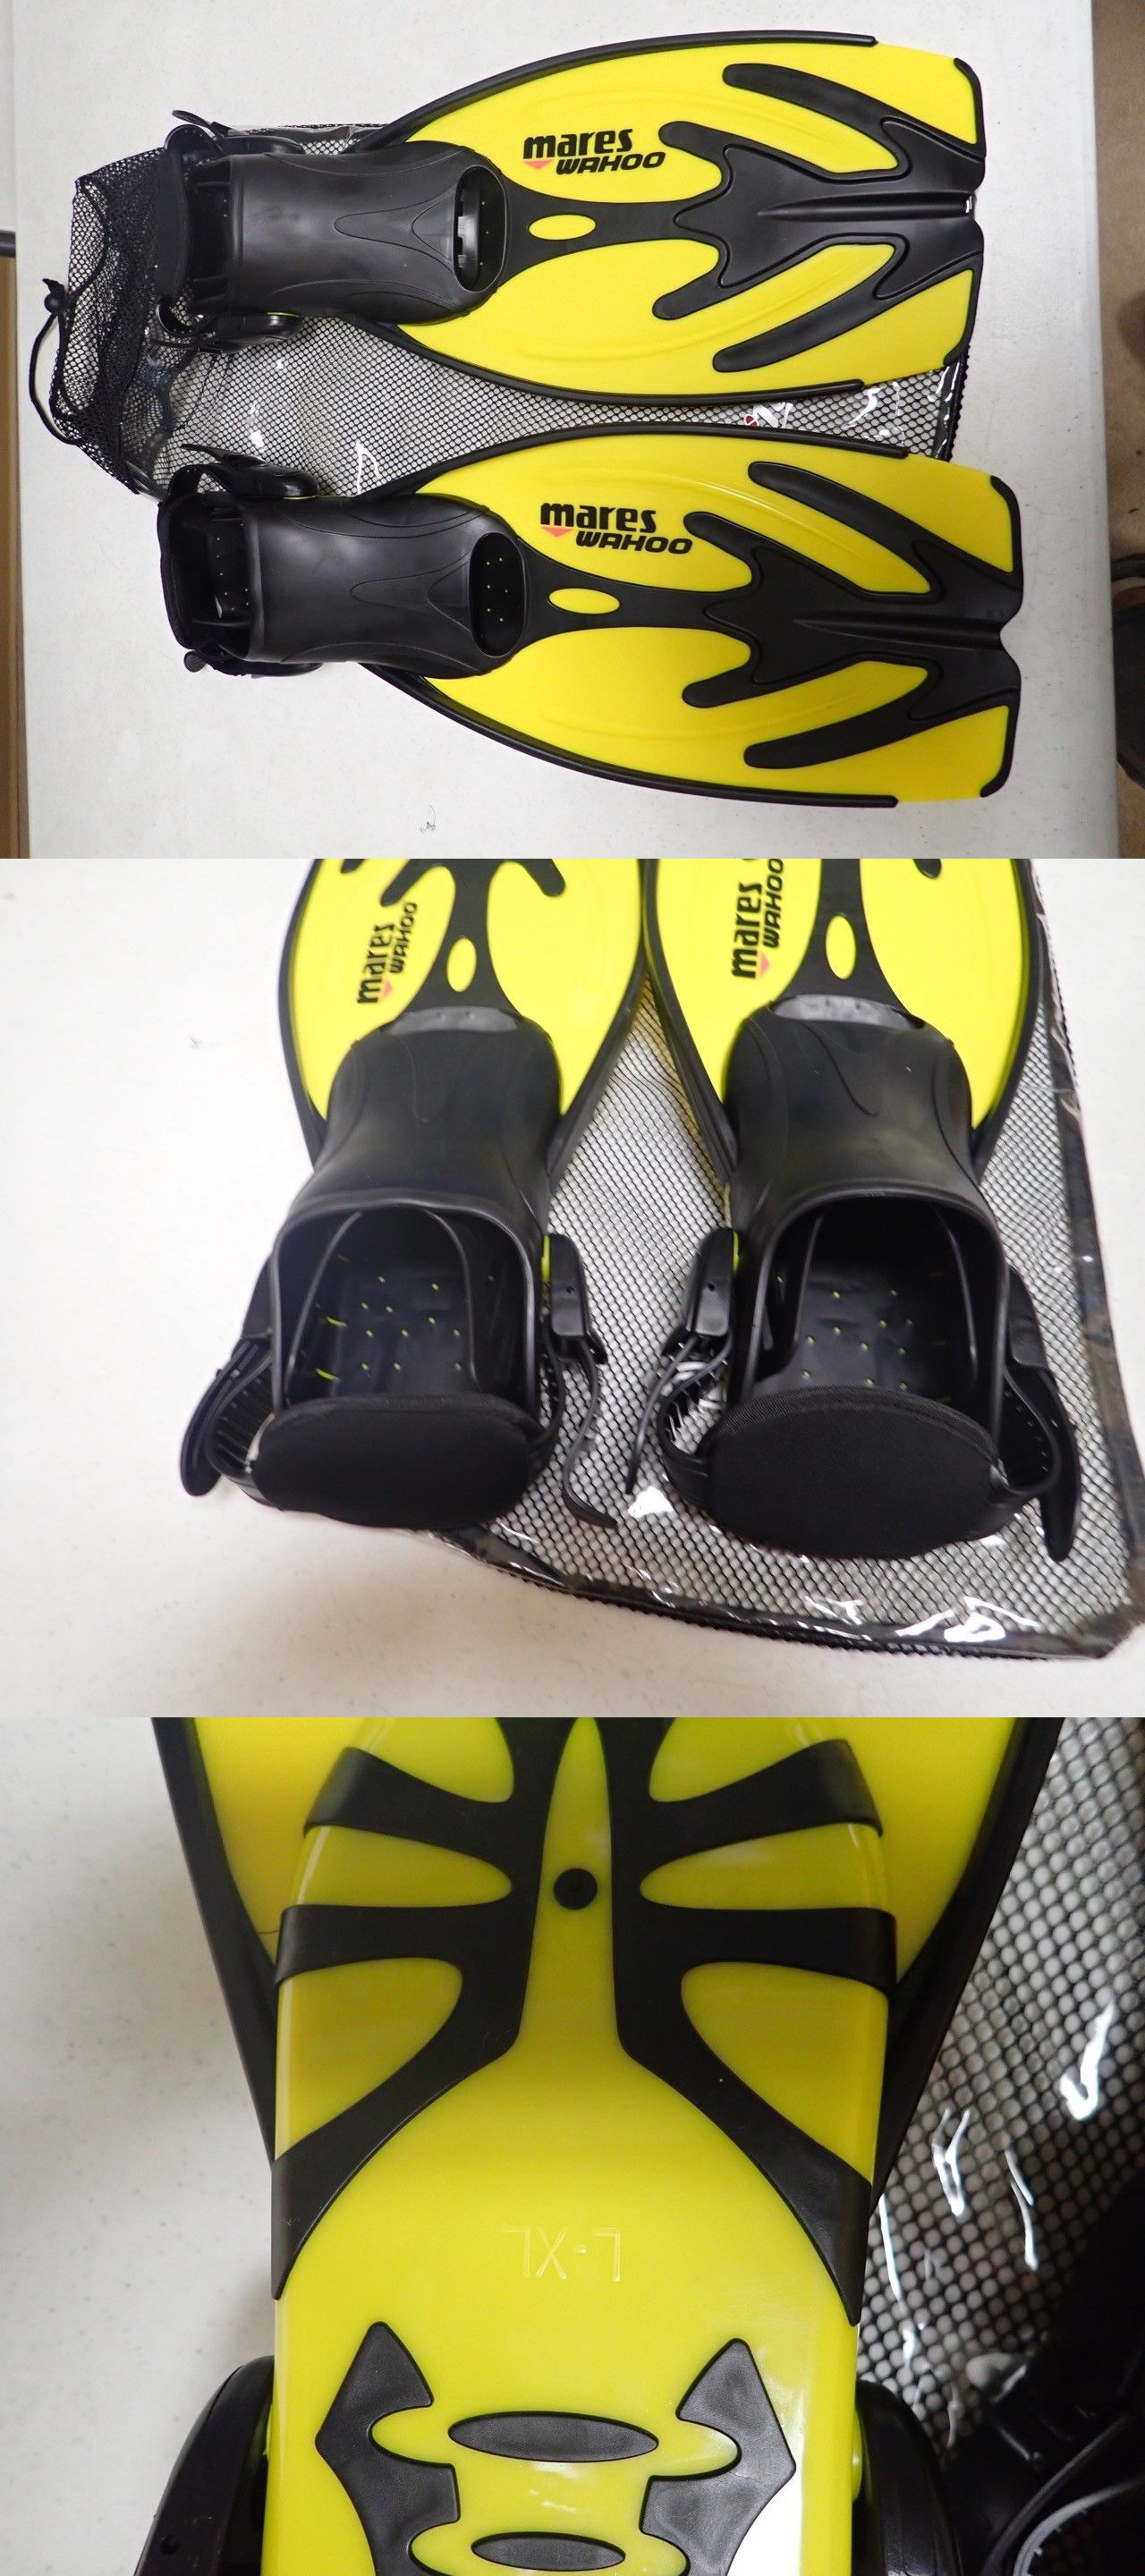 dfec86c5998a Fins Footwear and Gloves 159142  Diving Swimming Mares Wahoo Snorkeling  Yellow Flippers Scuba Fins Swim New! L Xl -  BUY IT NOW ONLY   17.95 on  eBay!